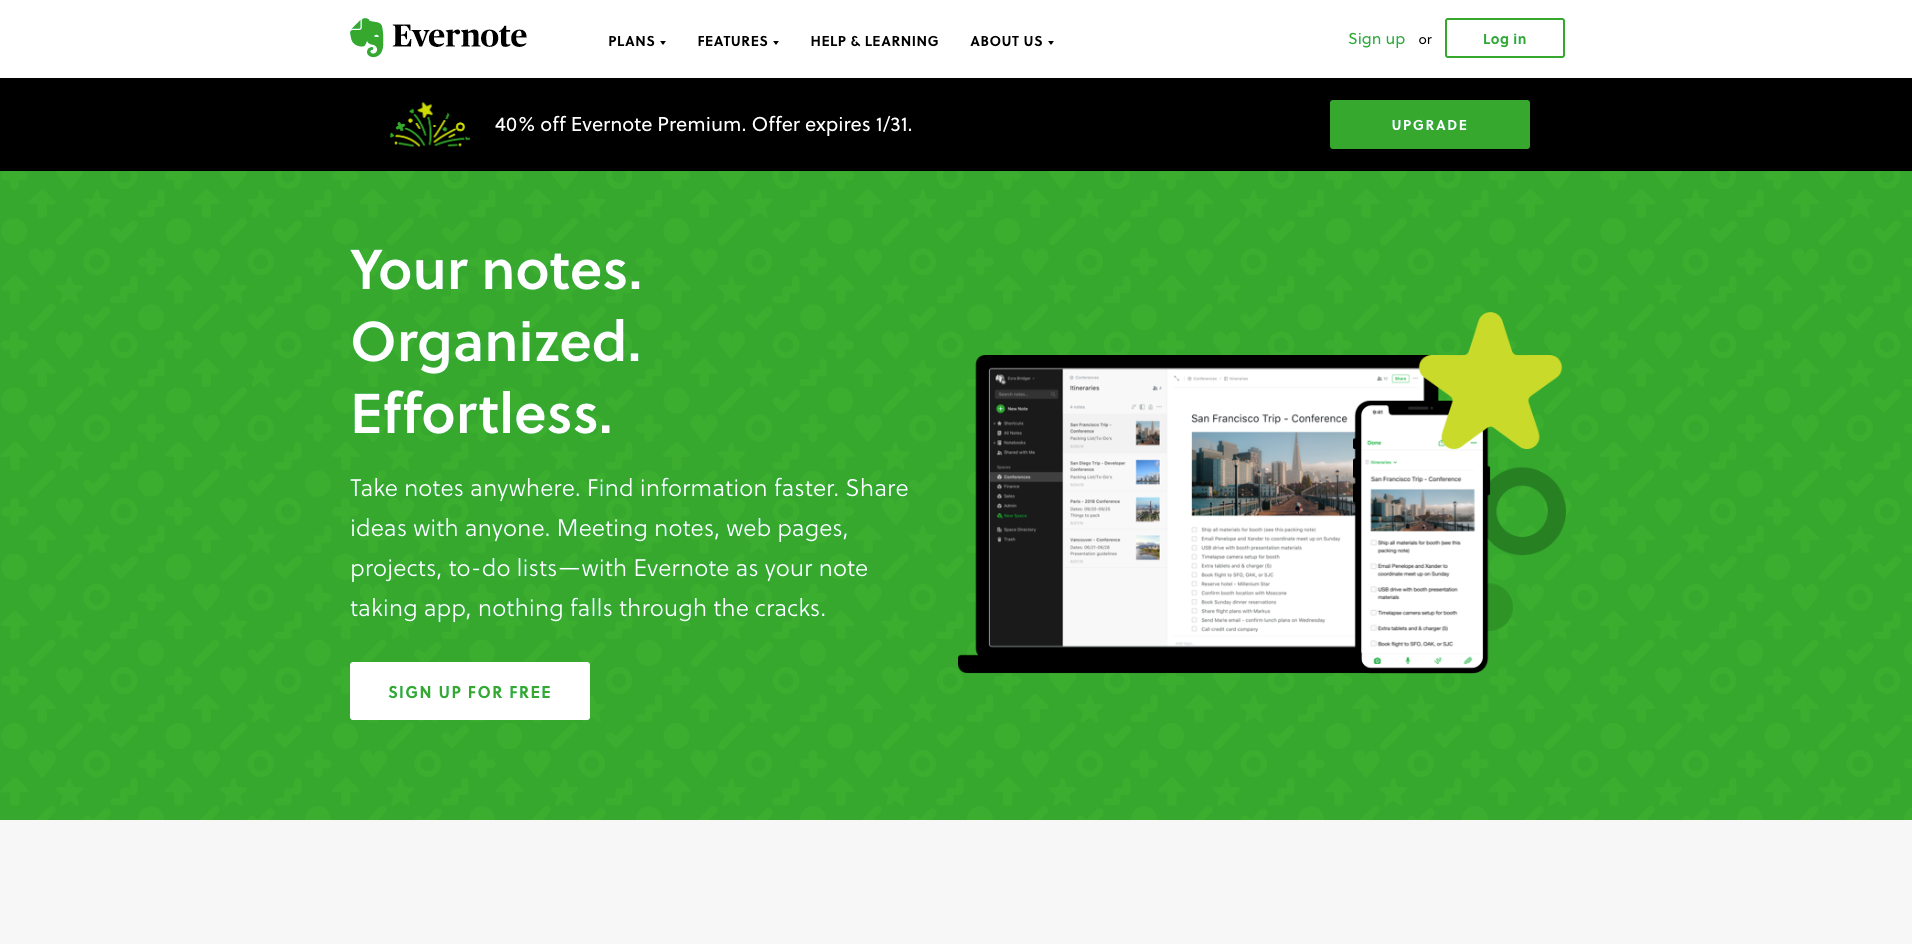 evernote homepage screenshot